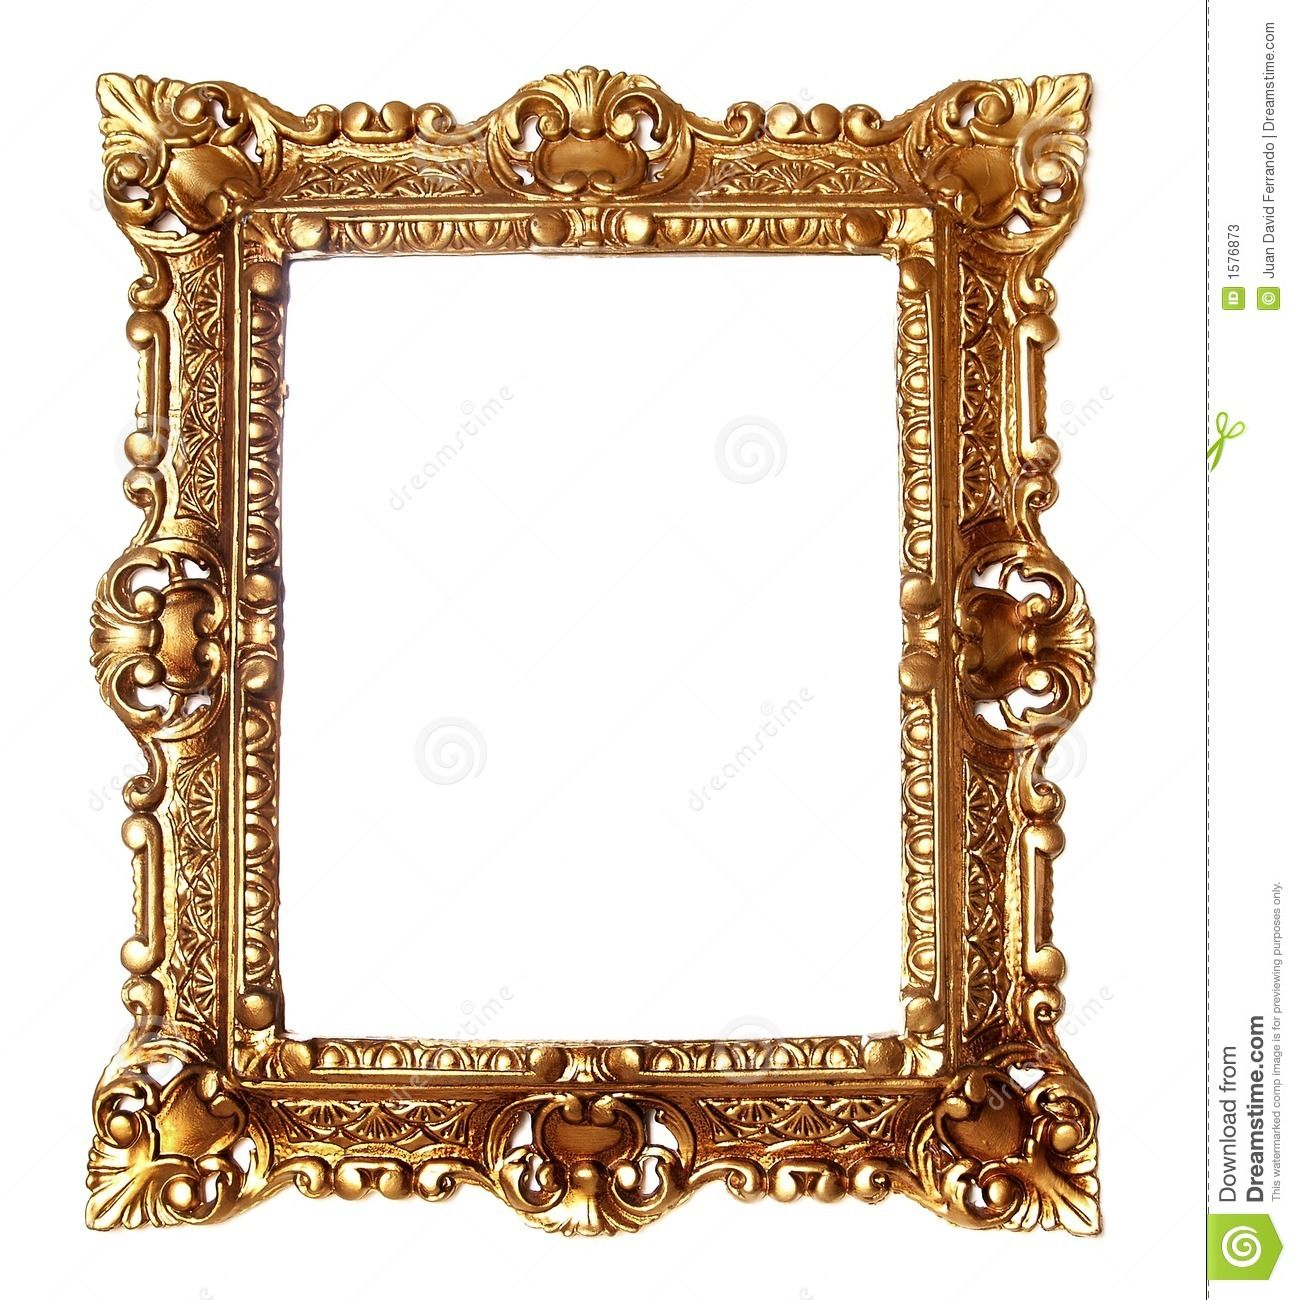 antique frame clipart gold clipart panda free clipart images rh pinterest com picture frame clip art for teachers picture frames clip art on pinterest